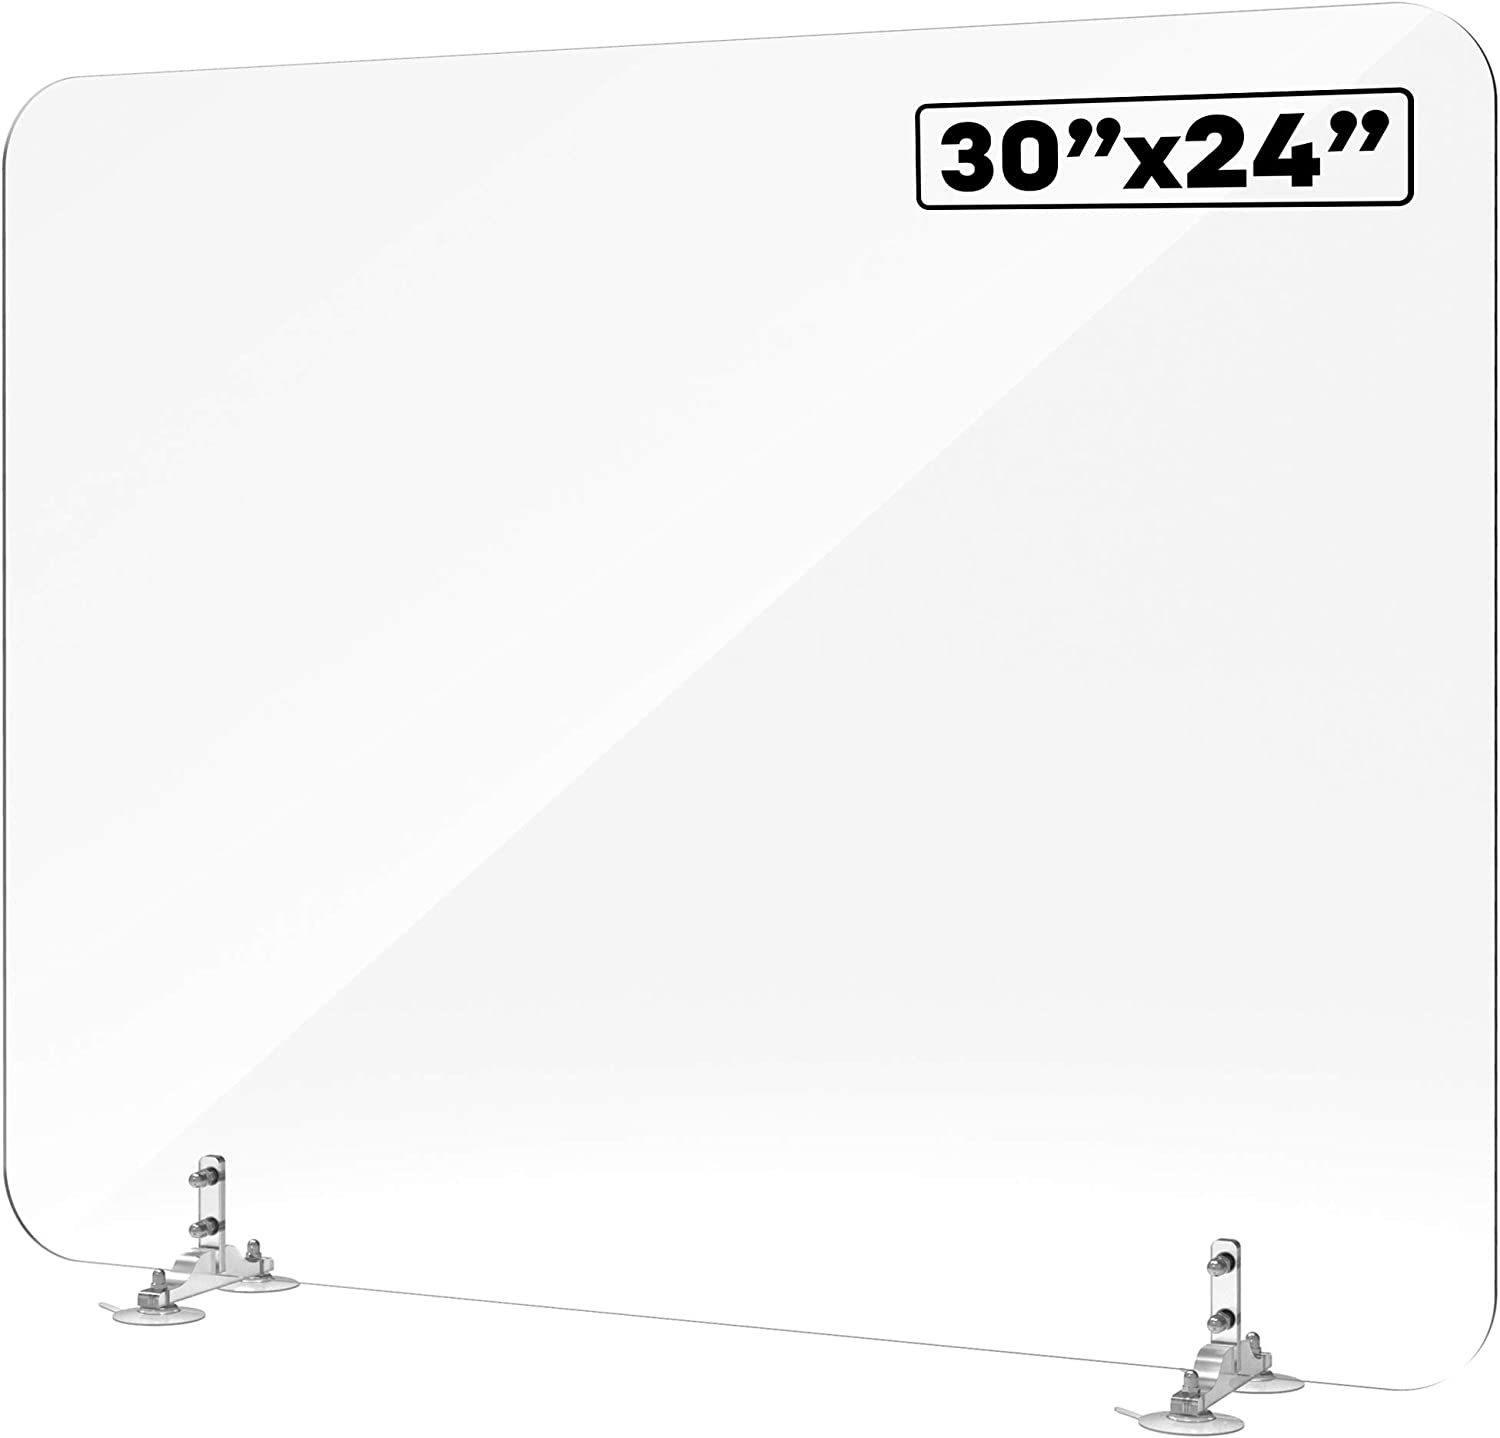 """Shield Geek Sneeze Guard for Desk - Plexiglass Shield with Suction Cup Mount - Crystal Clear Acrylic Plexiglass Barrier - for Office Desk, Counters, and Restaurants - 30"""" Wide x 24"""" Tall"""